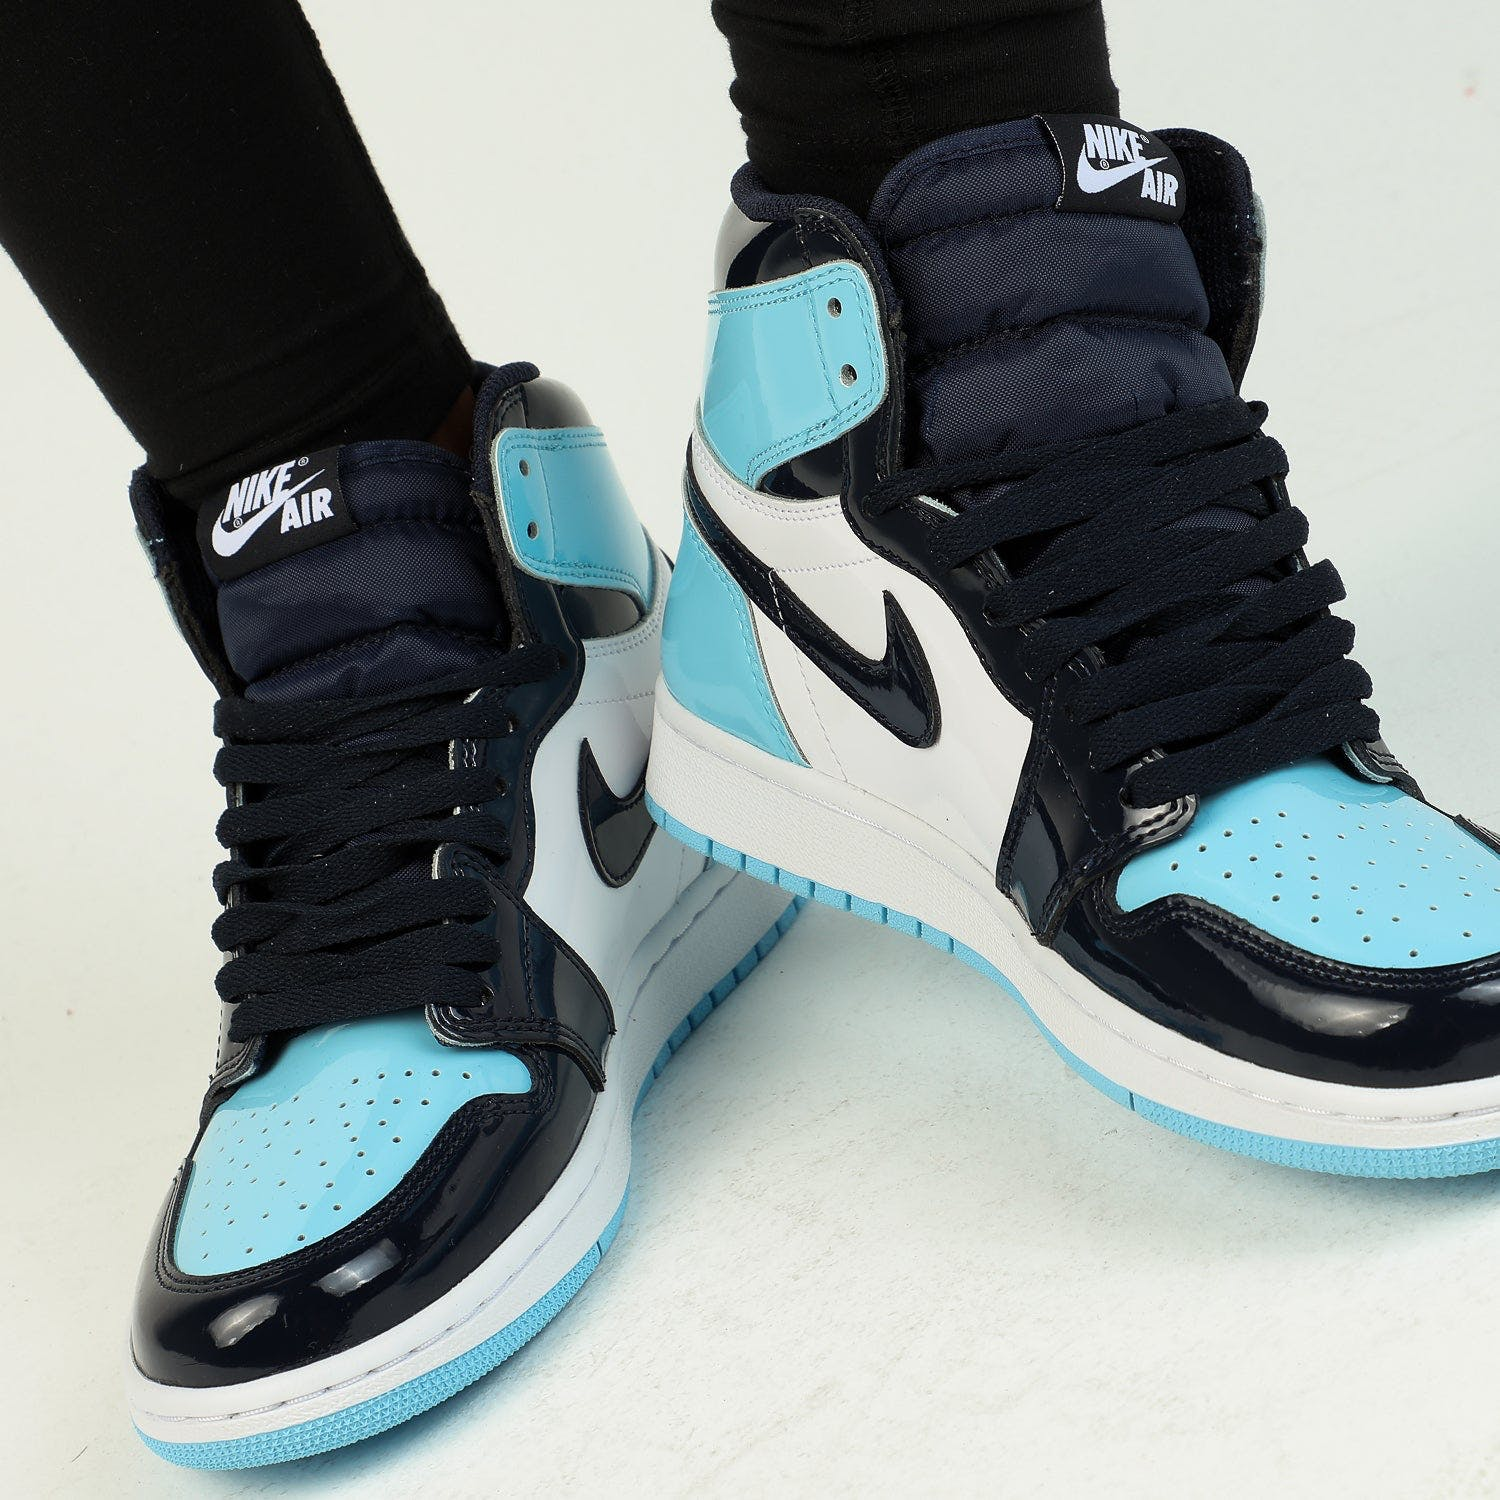 nike air jordan 1 obsidian blue womens